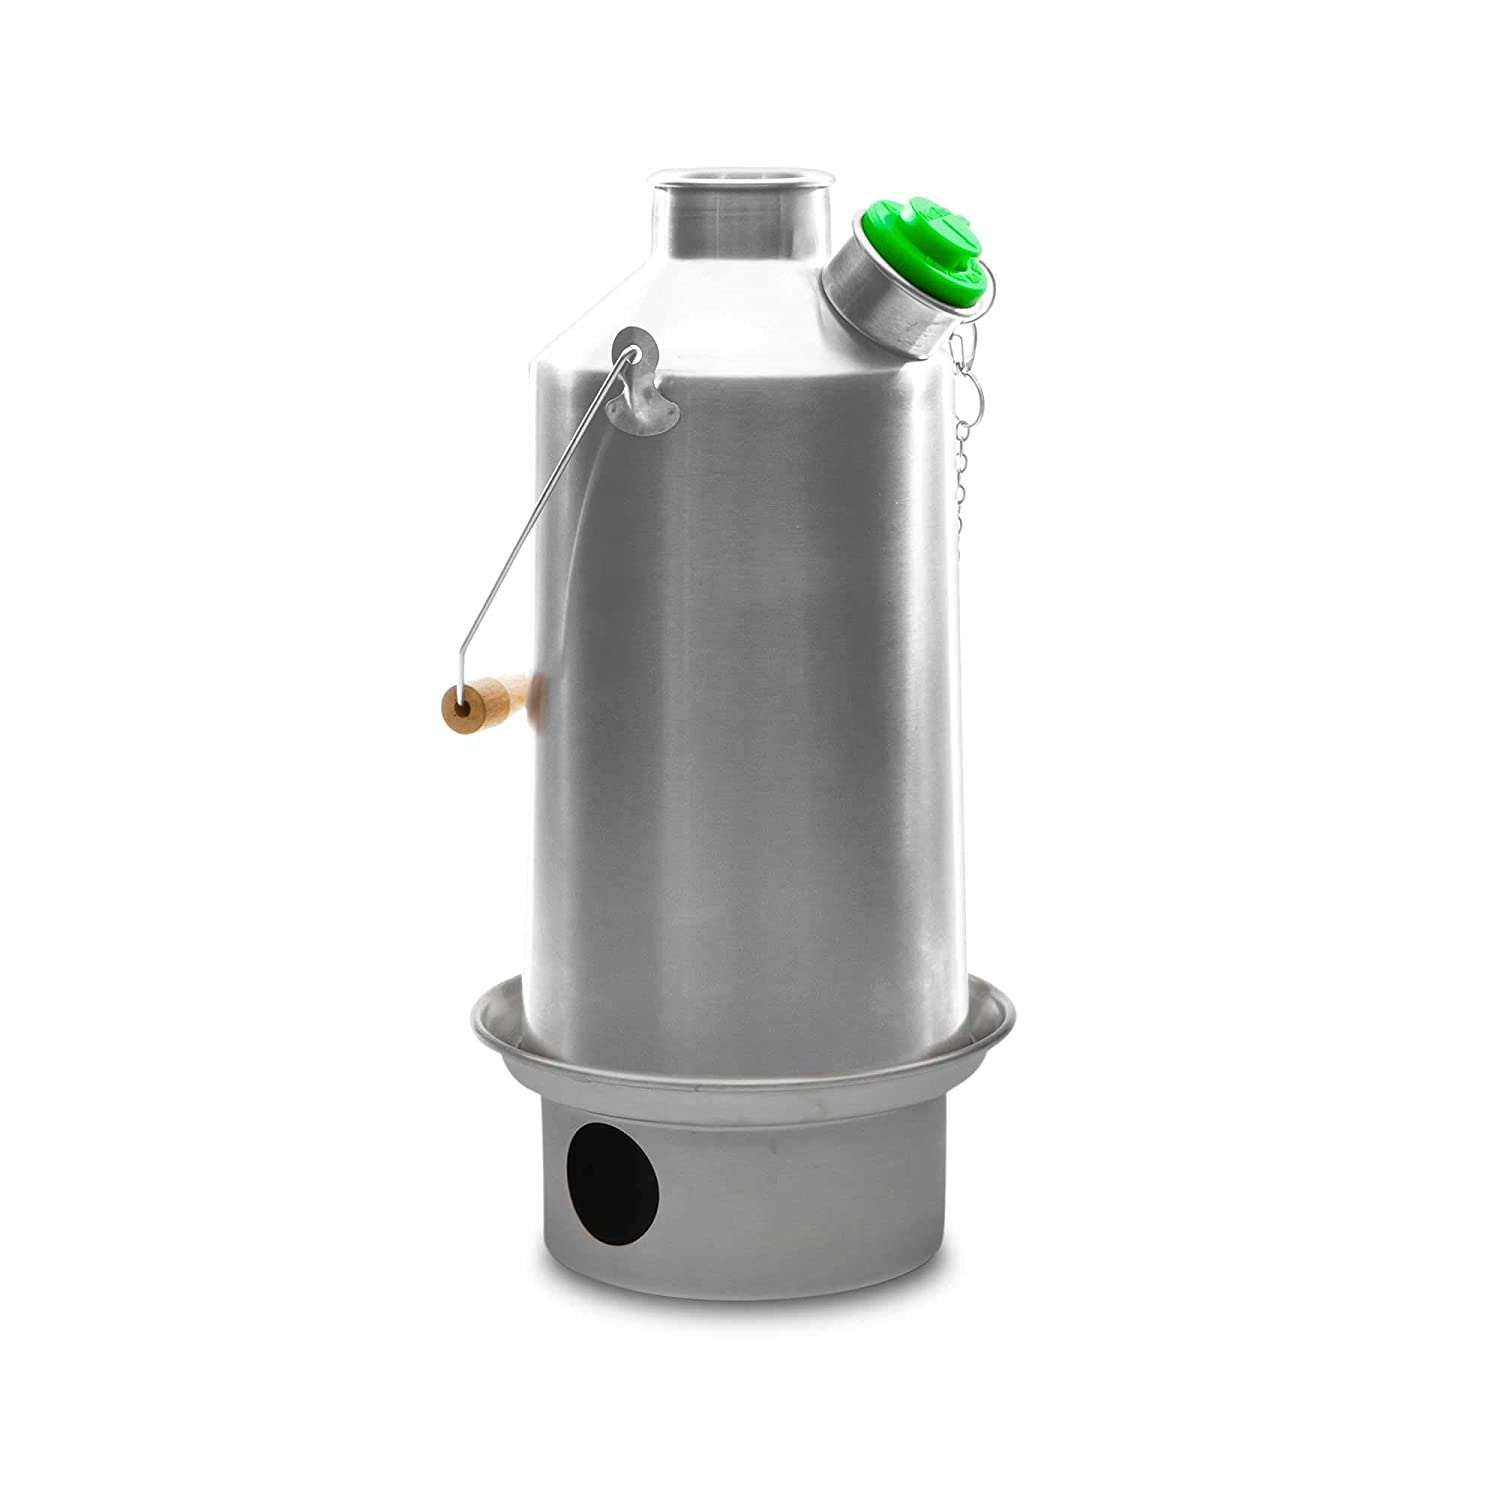 Kelly Kettle Camp Stove Stainless Steel - Boils Water Within Minutes, Uses Natural Fuel, and Enables You to Rehydrate Food or Cook a Meal (Large Base Camp) [並行輸入品] B07R4WKGV9